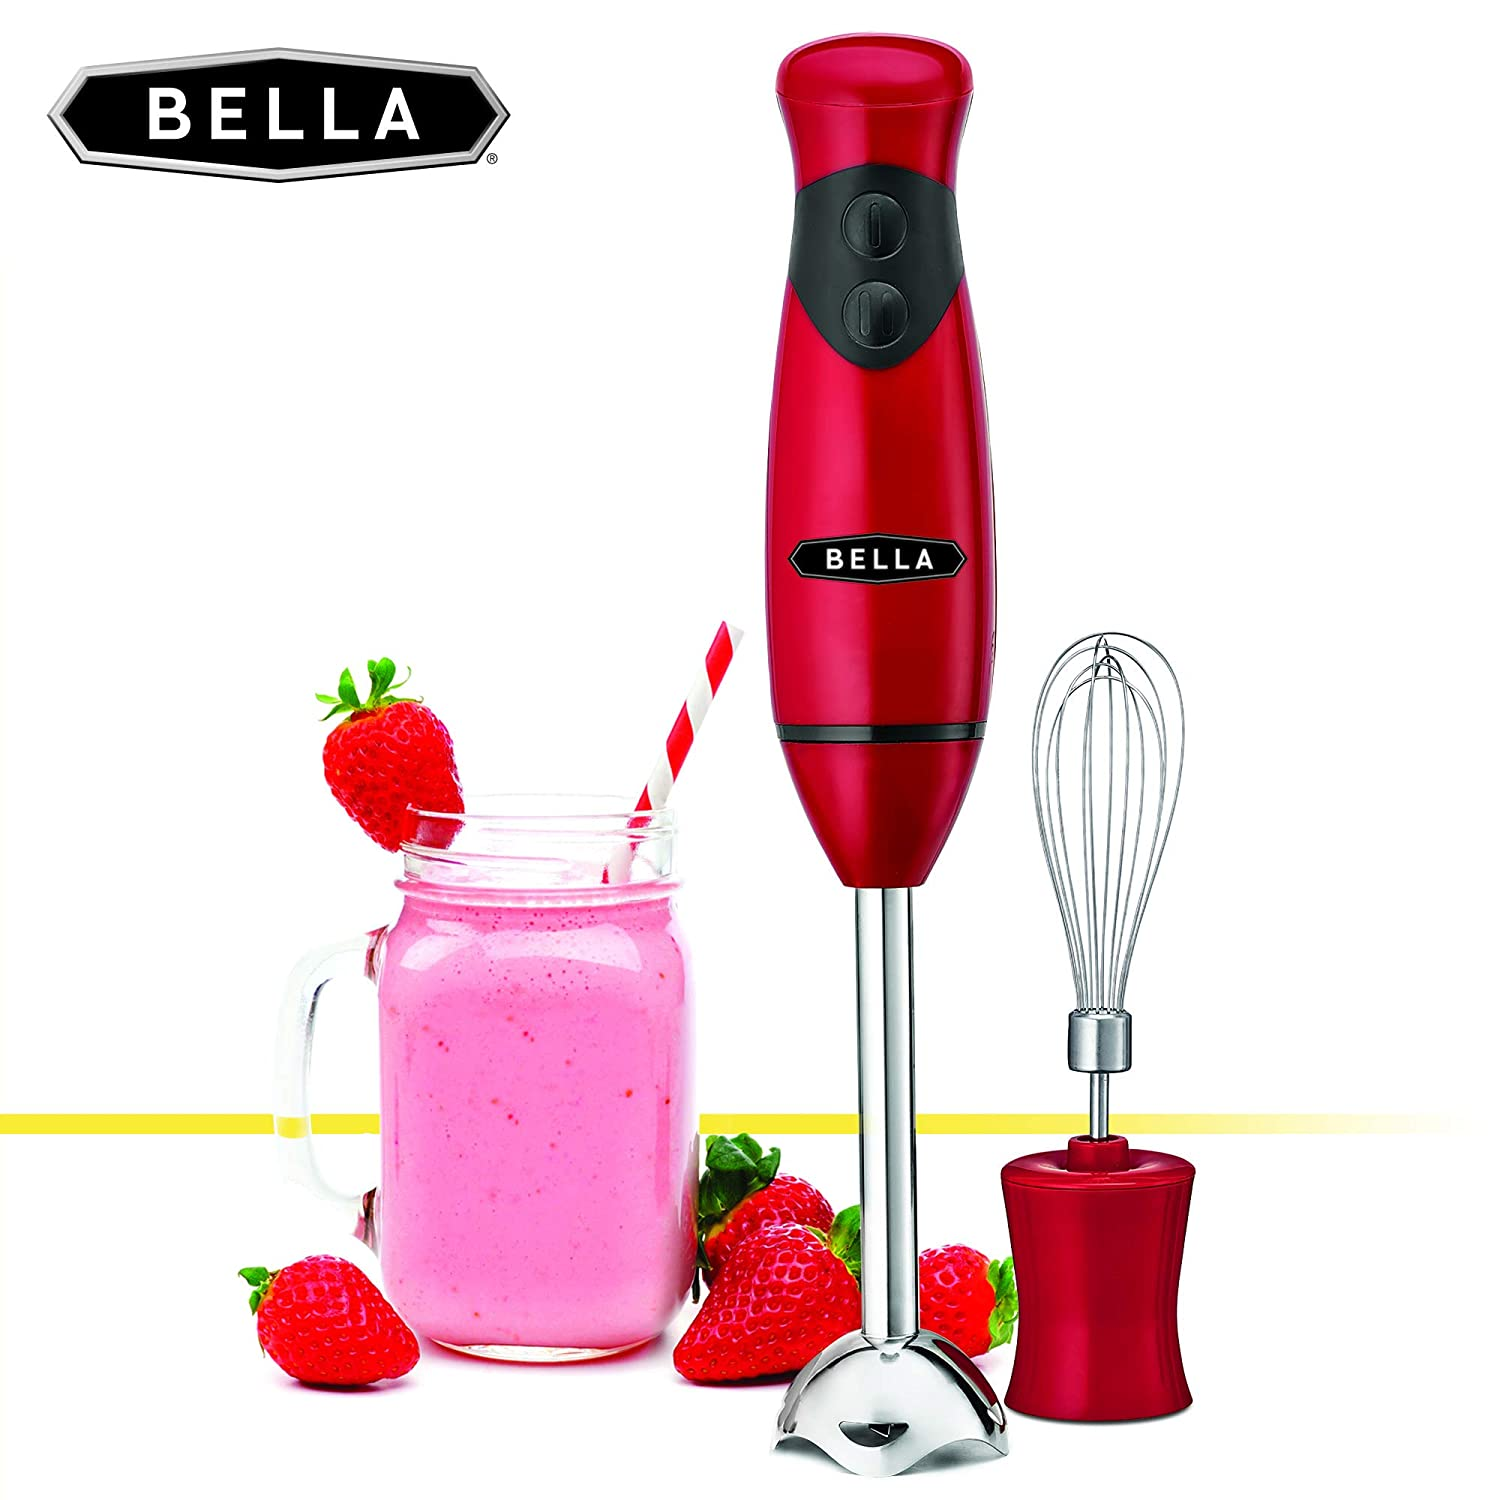 BELLA 2-Speed Hand Immersion Blender with Whisk Attachment